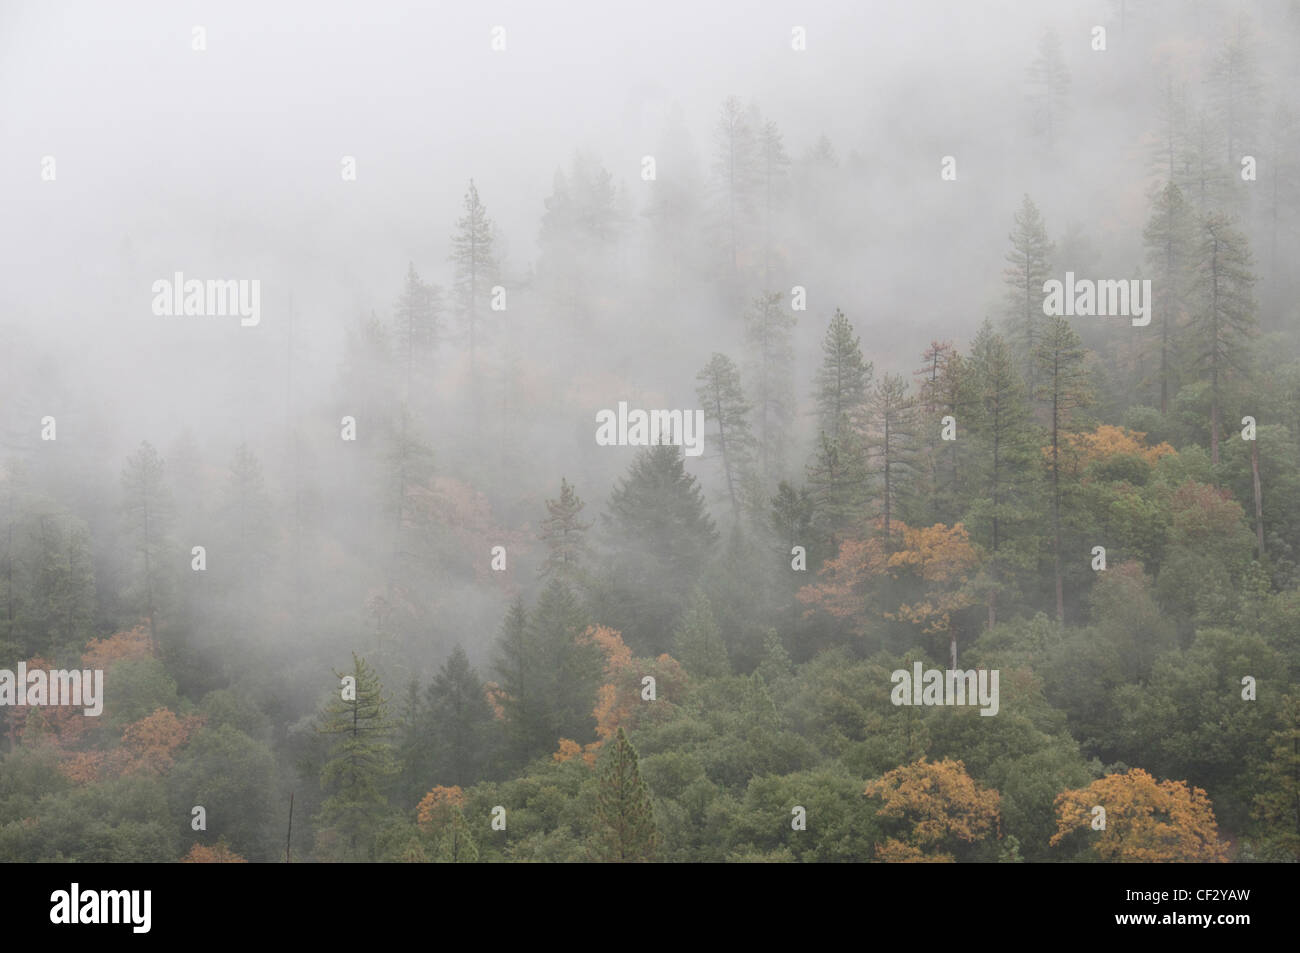 Fog invades a Sierra Mountain forest of evergreen and deciduous trees. Autumn, Northern California. - Stock Image